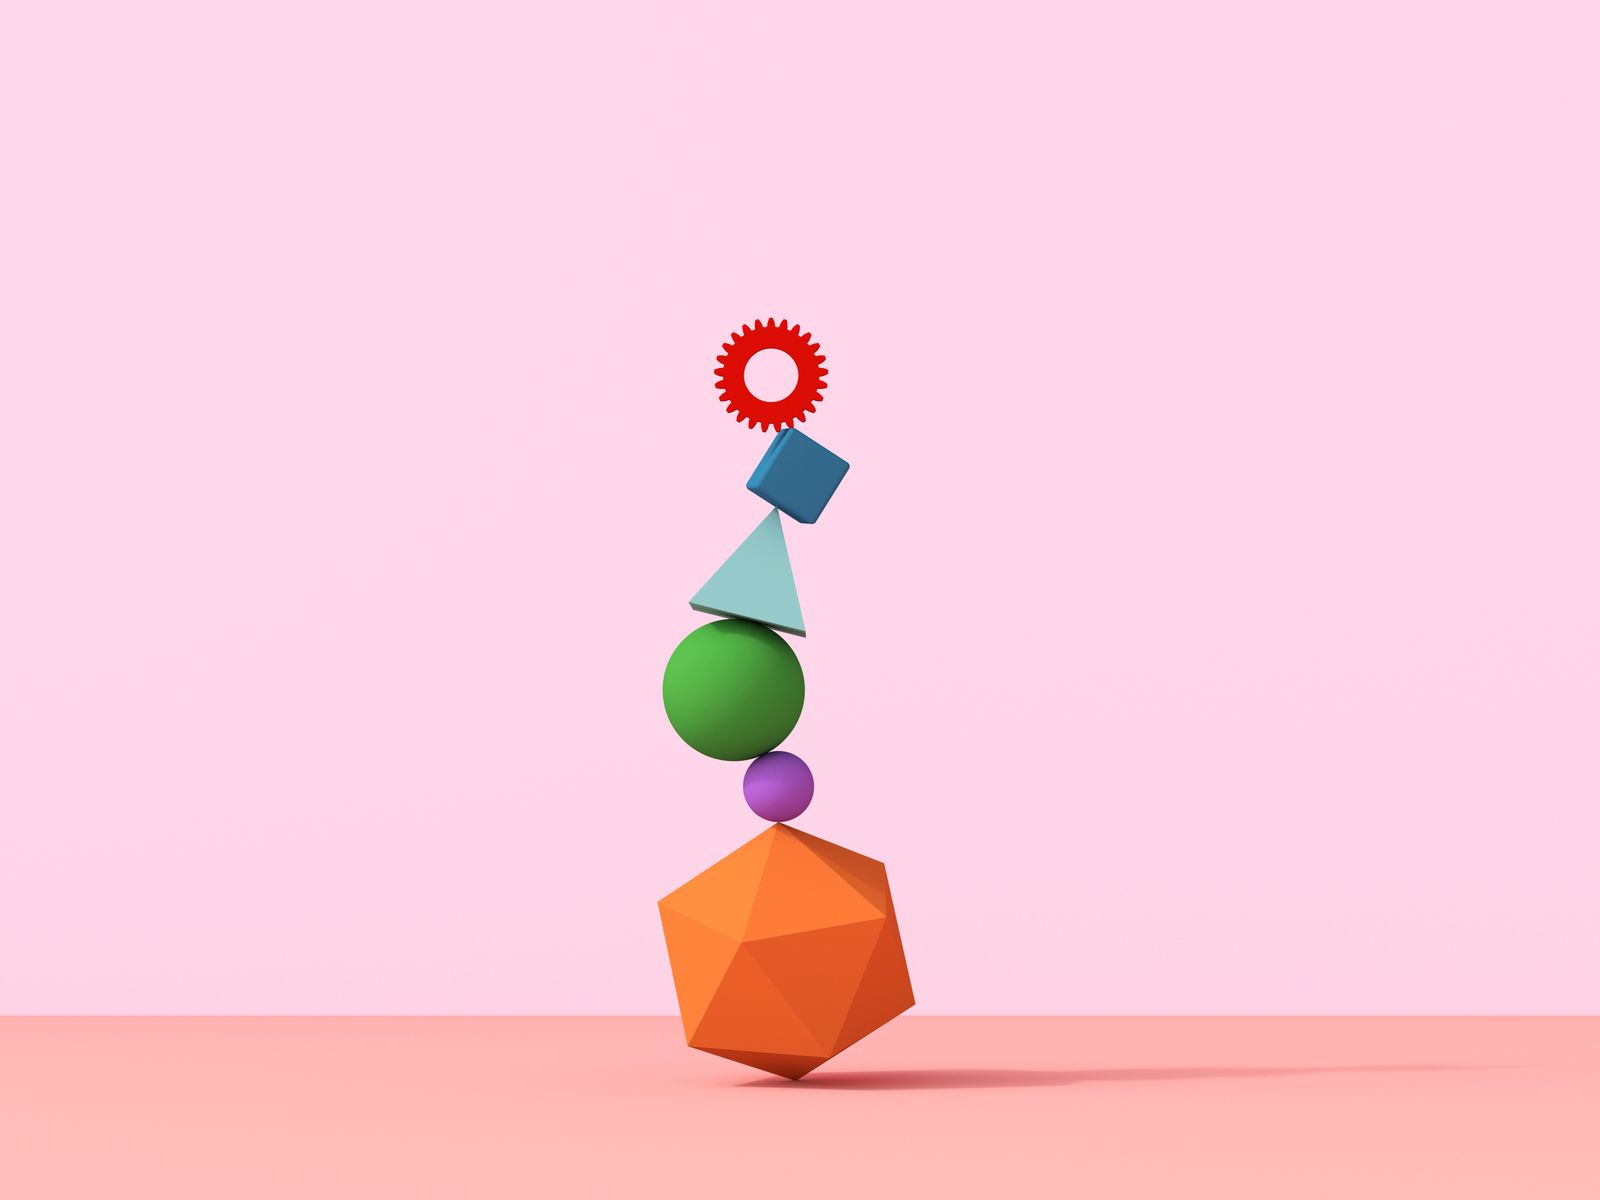 stack of geometric shapes